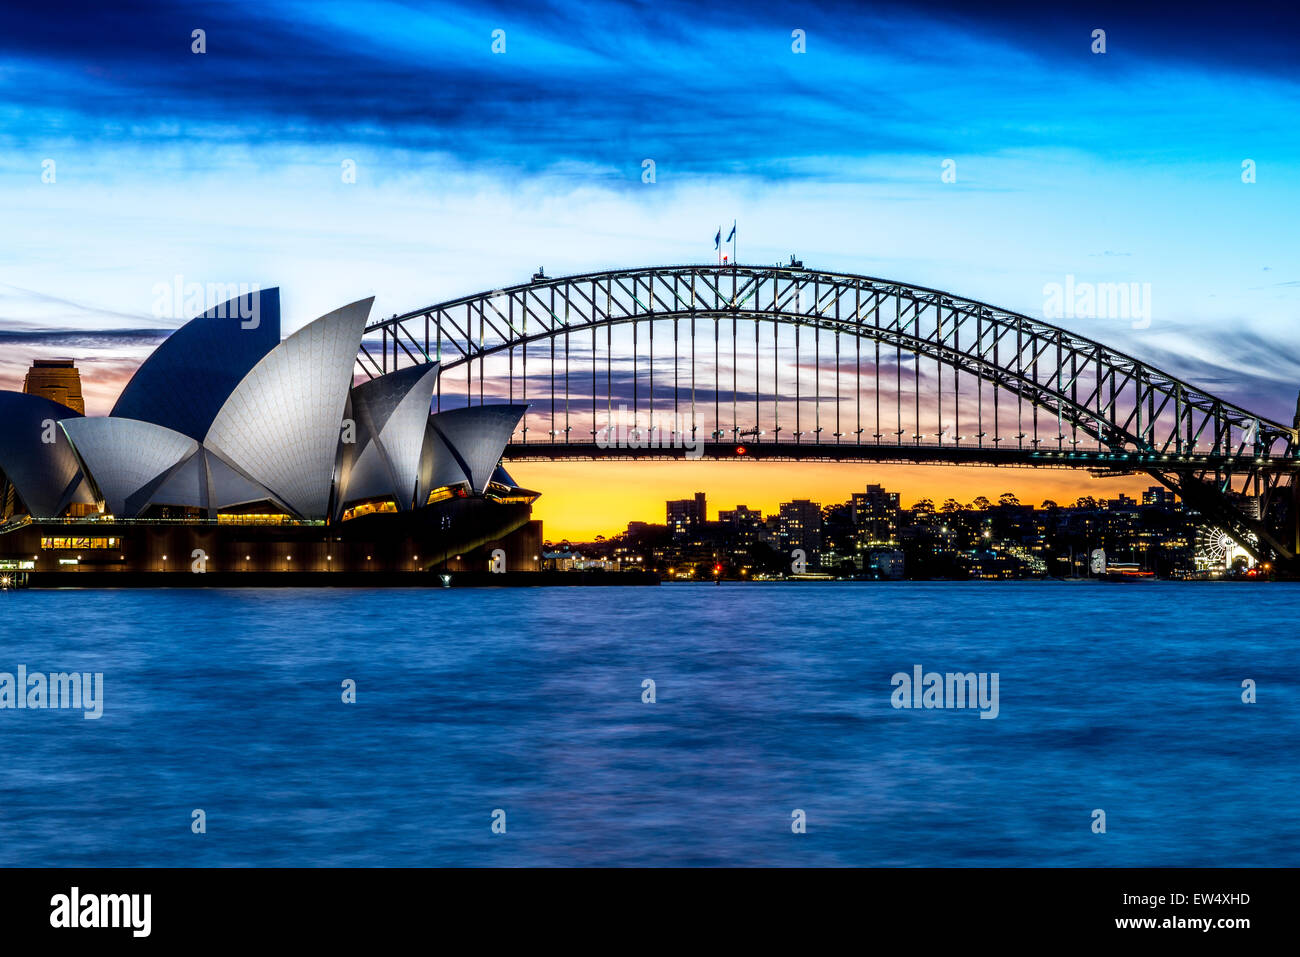 Sydney Opera House and Bridge at sunset - Stock Image